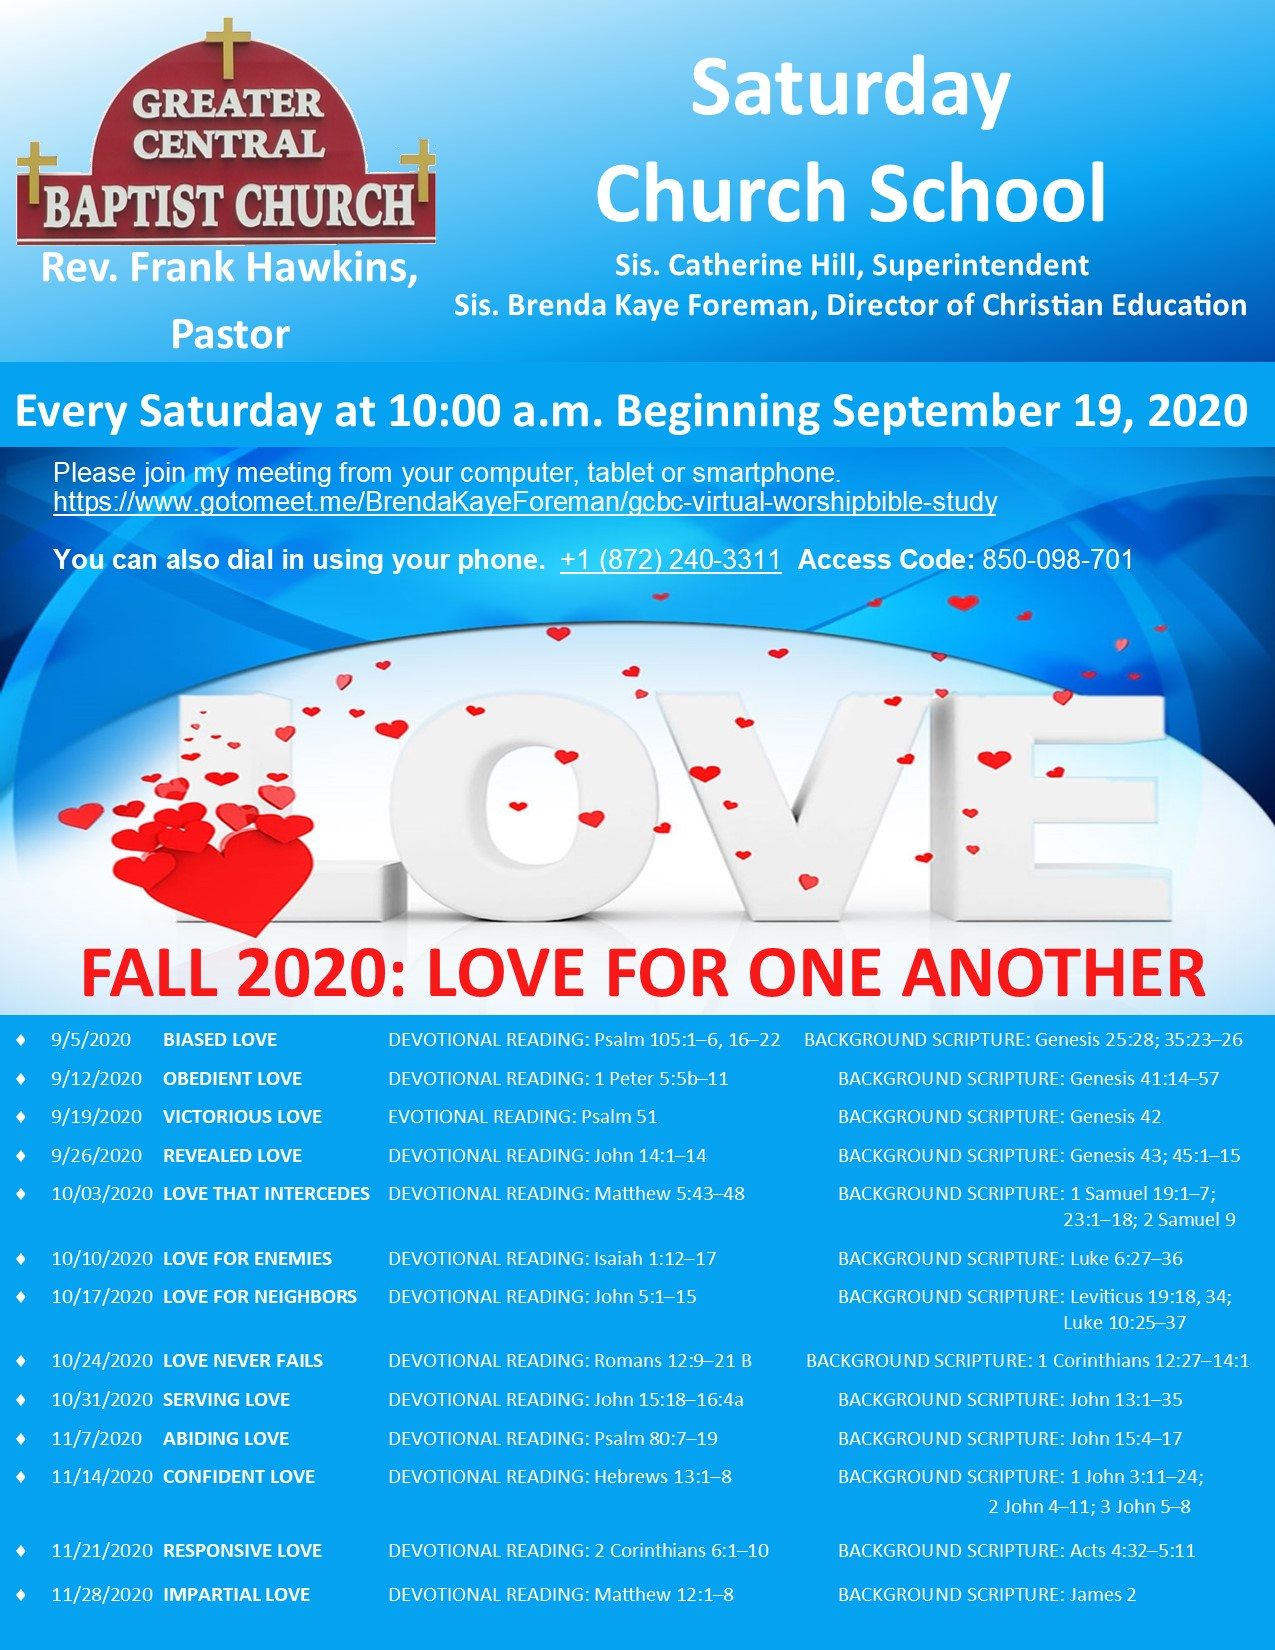 Saturday Church School Fall - Love For One Another